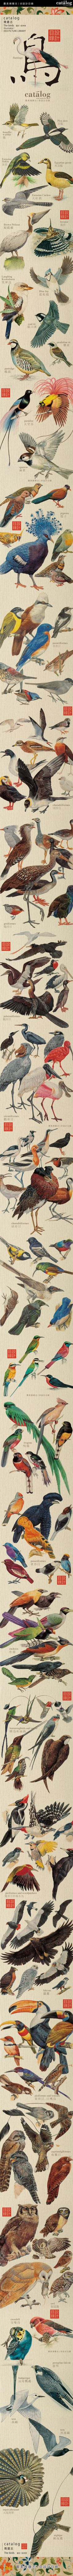 The Great and Beautiful Catalog of Birds | Earthly Mission